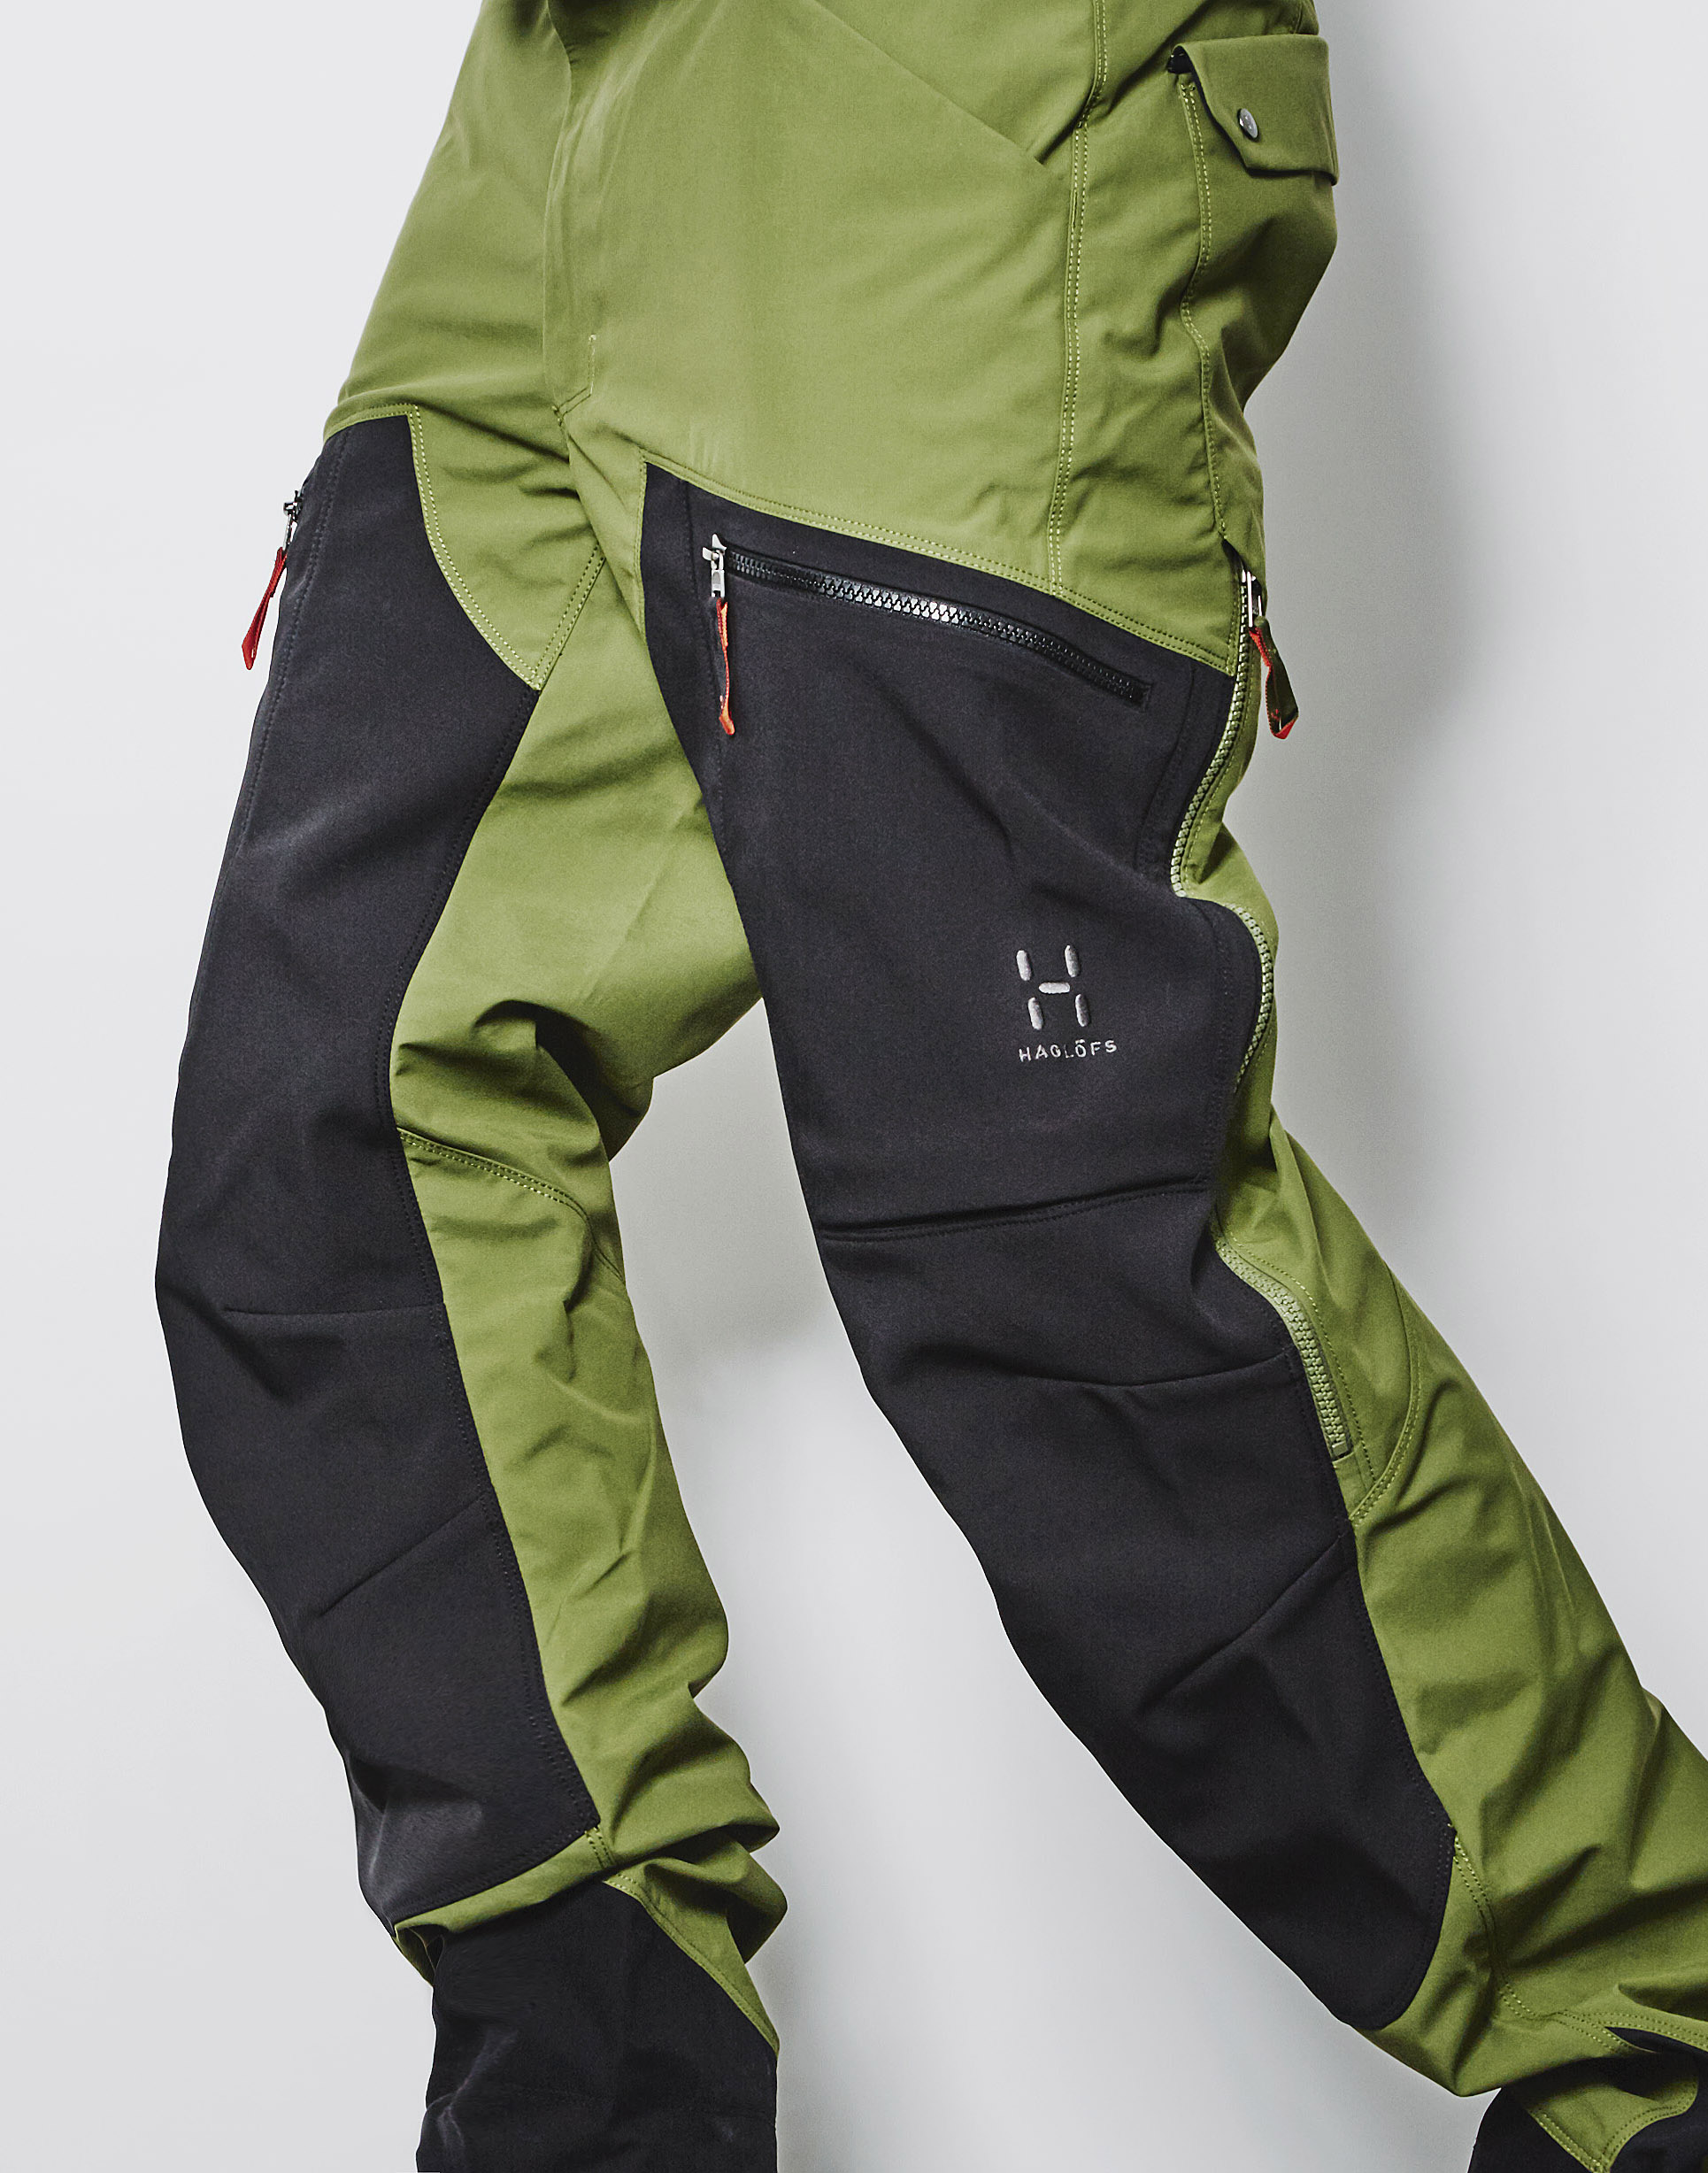 Rugged Mountain Pant Pro Haglöfs